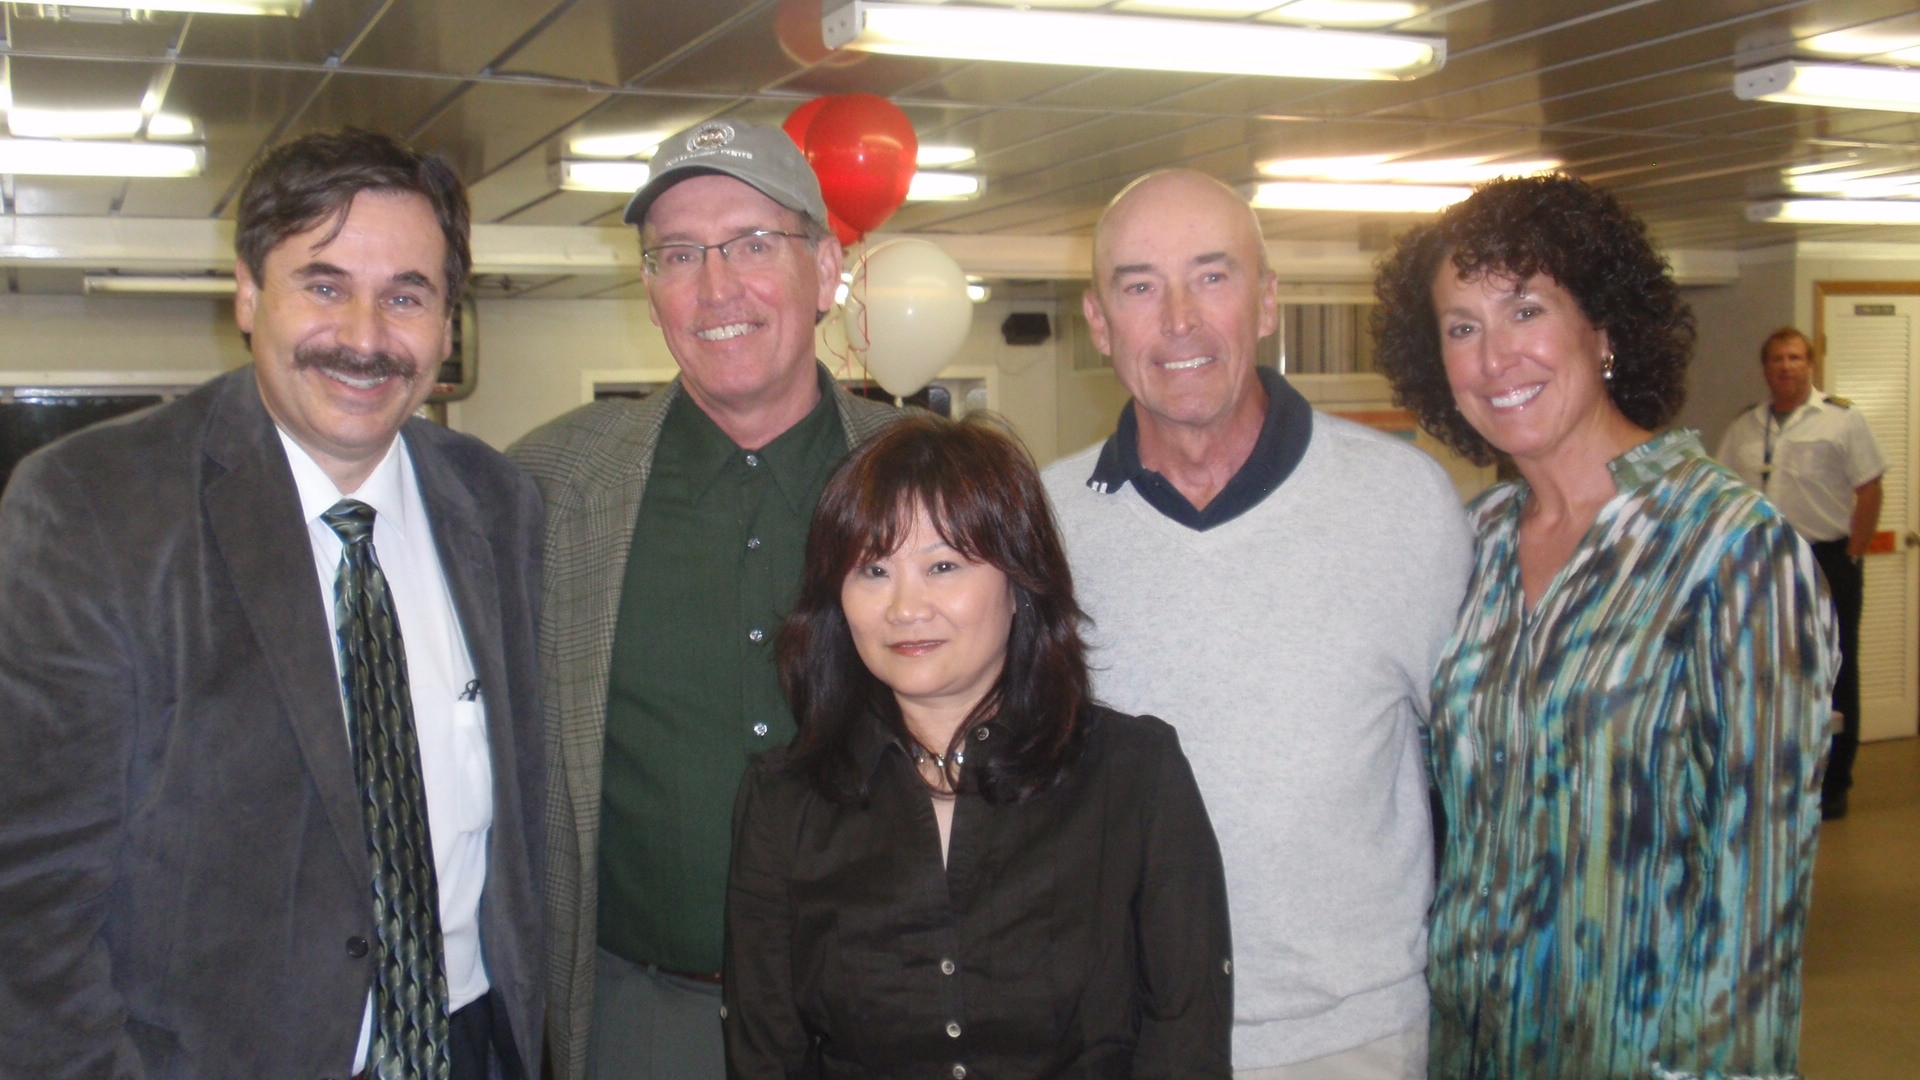 Dr. Schuster (left) is joined by (left to right) John Sutter, Gene Travers, Angela Travers and Susan Yang (front).